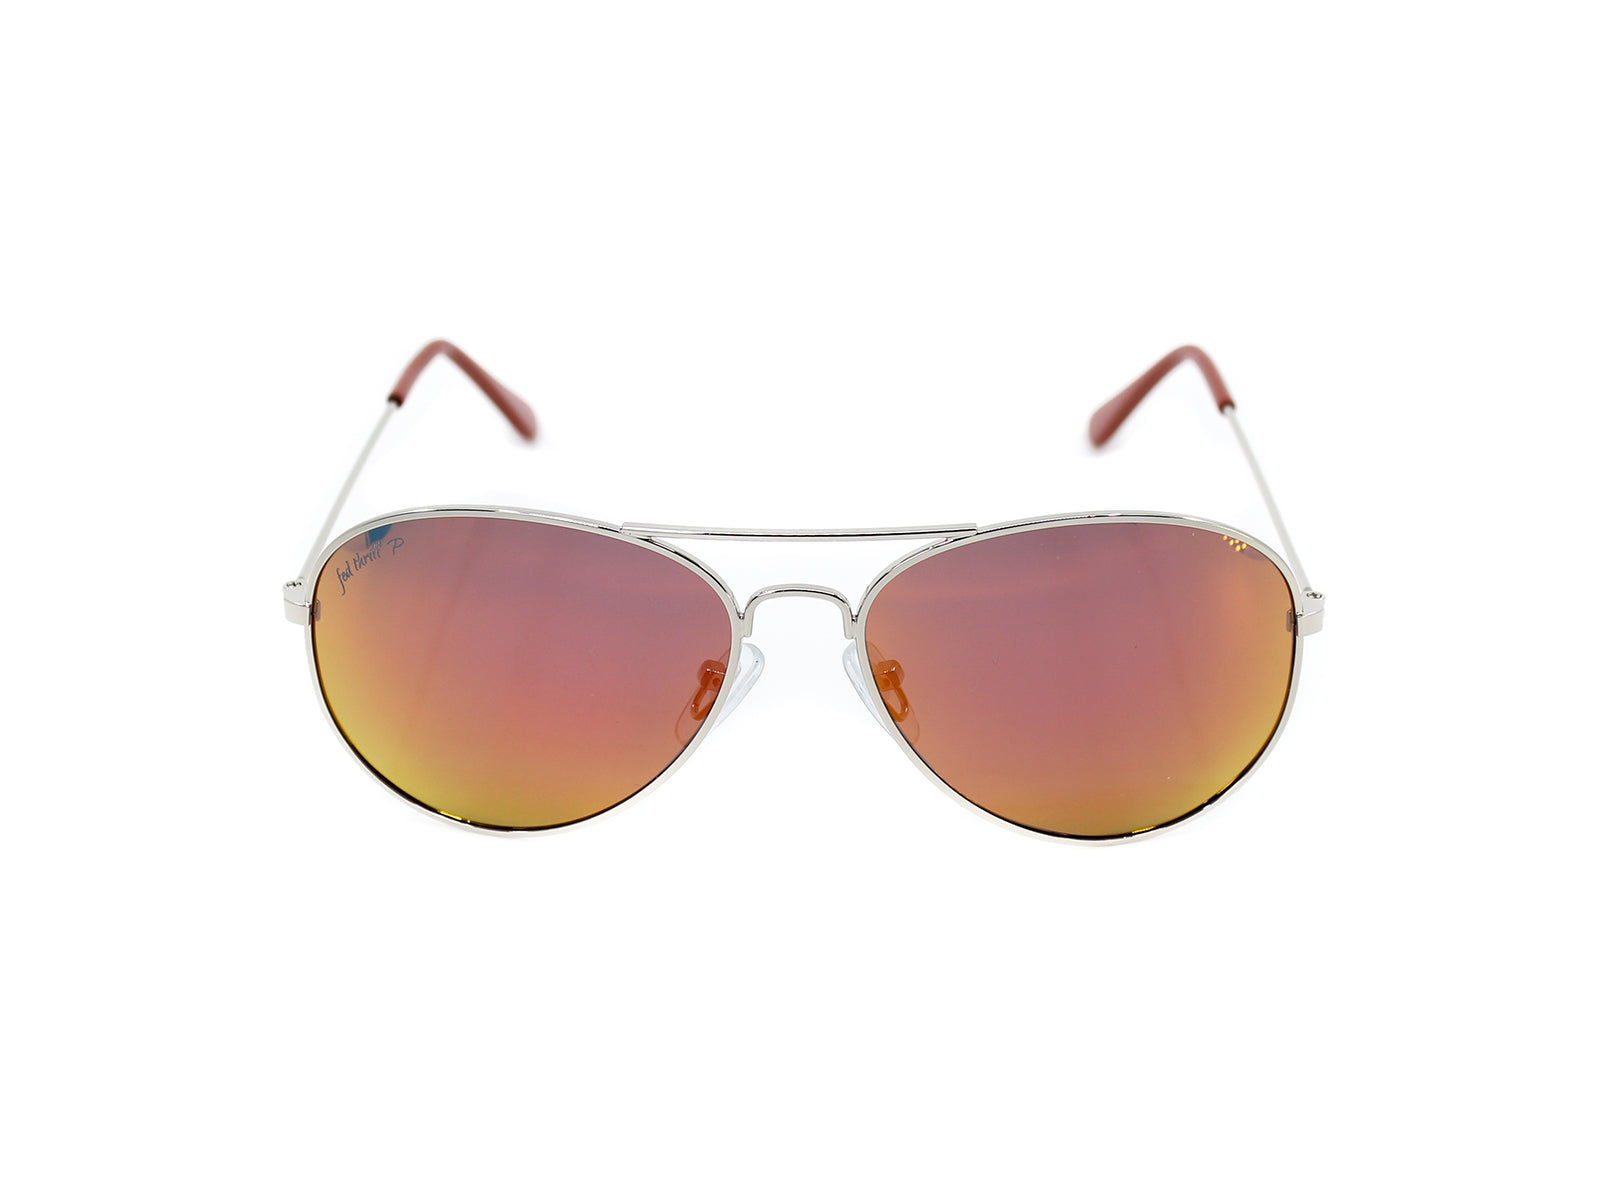 Mavericks - Mandarins: Silver / Mirrored Orange Polarized